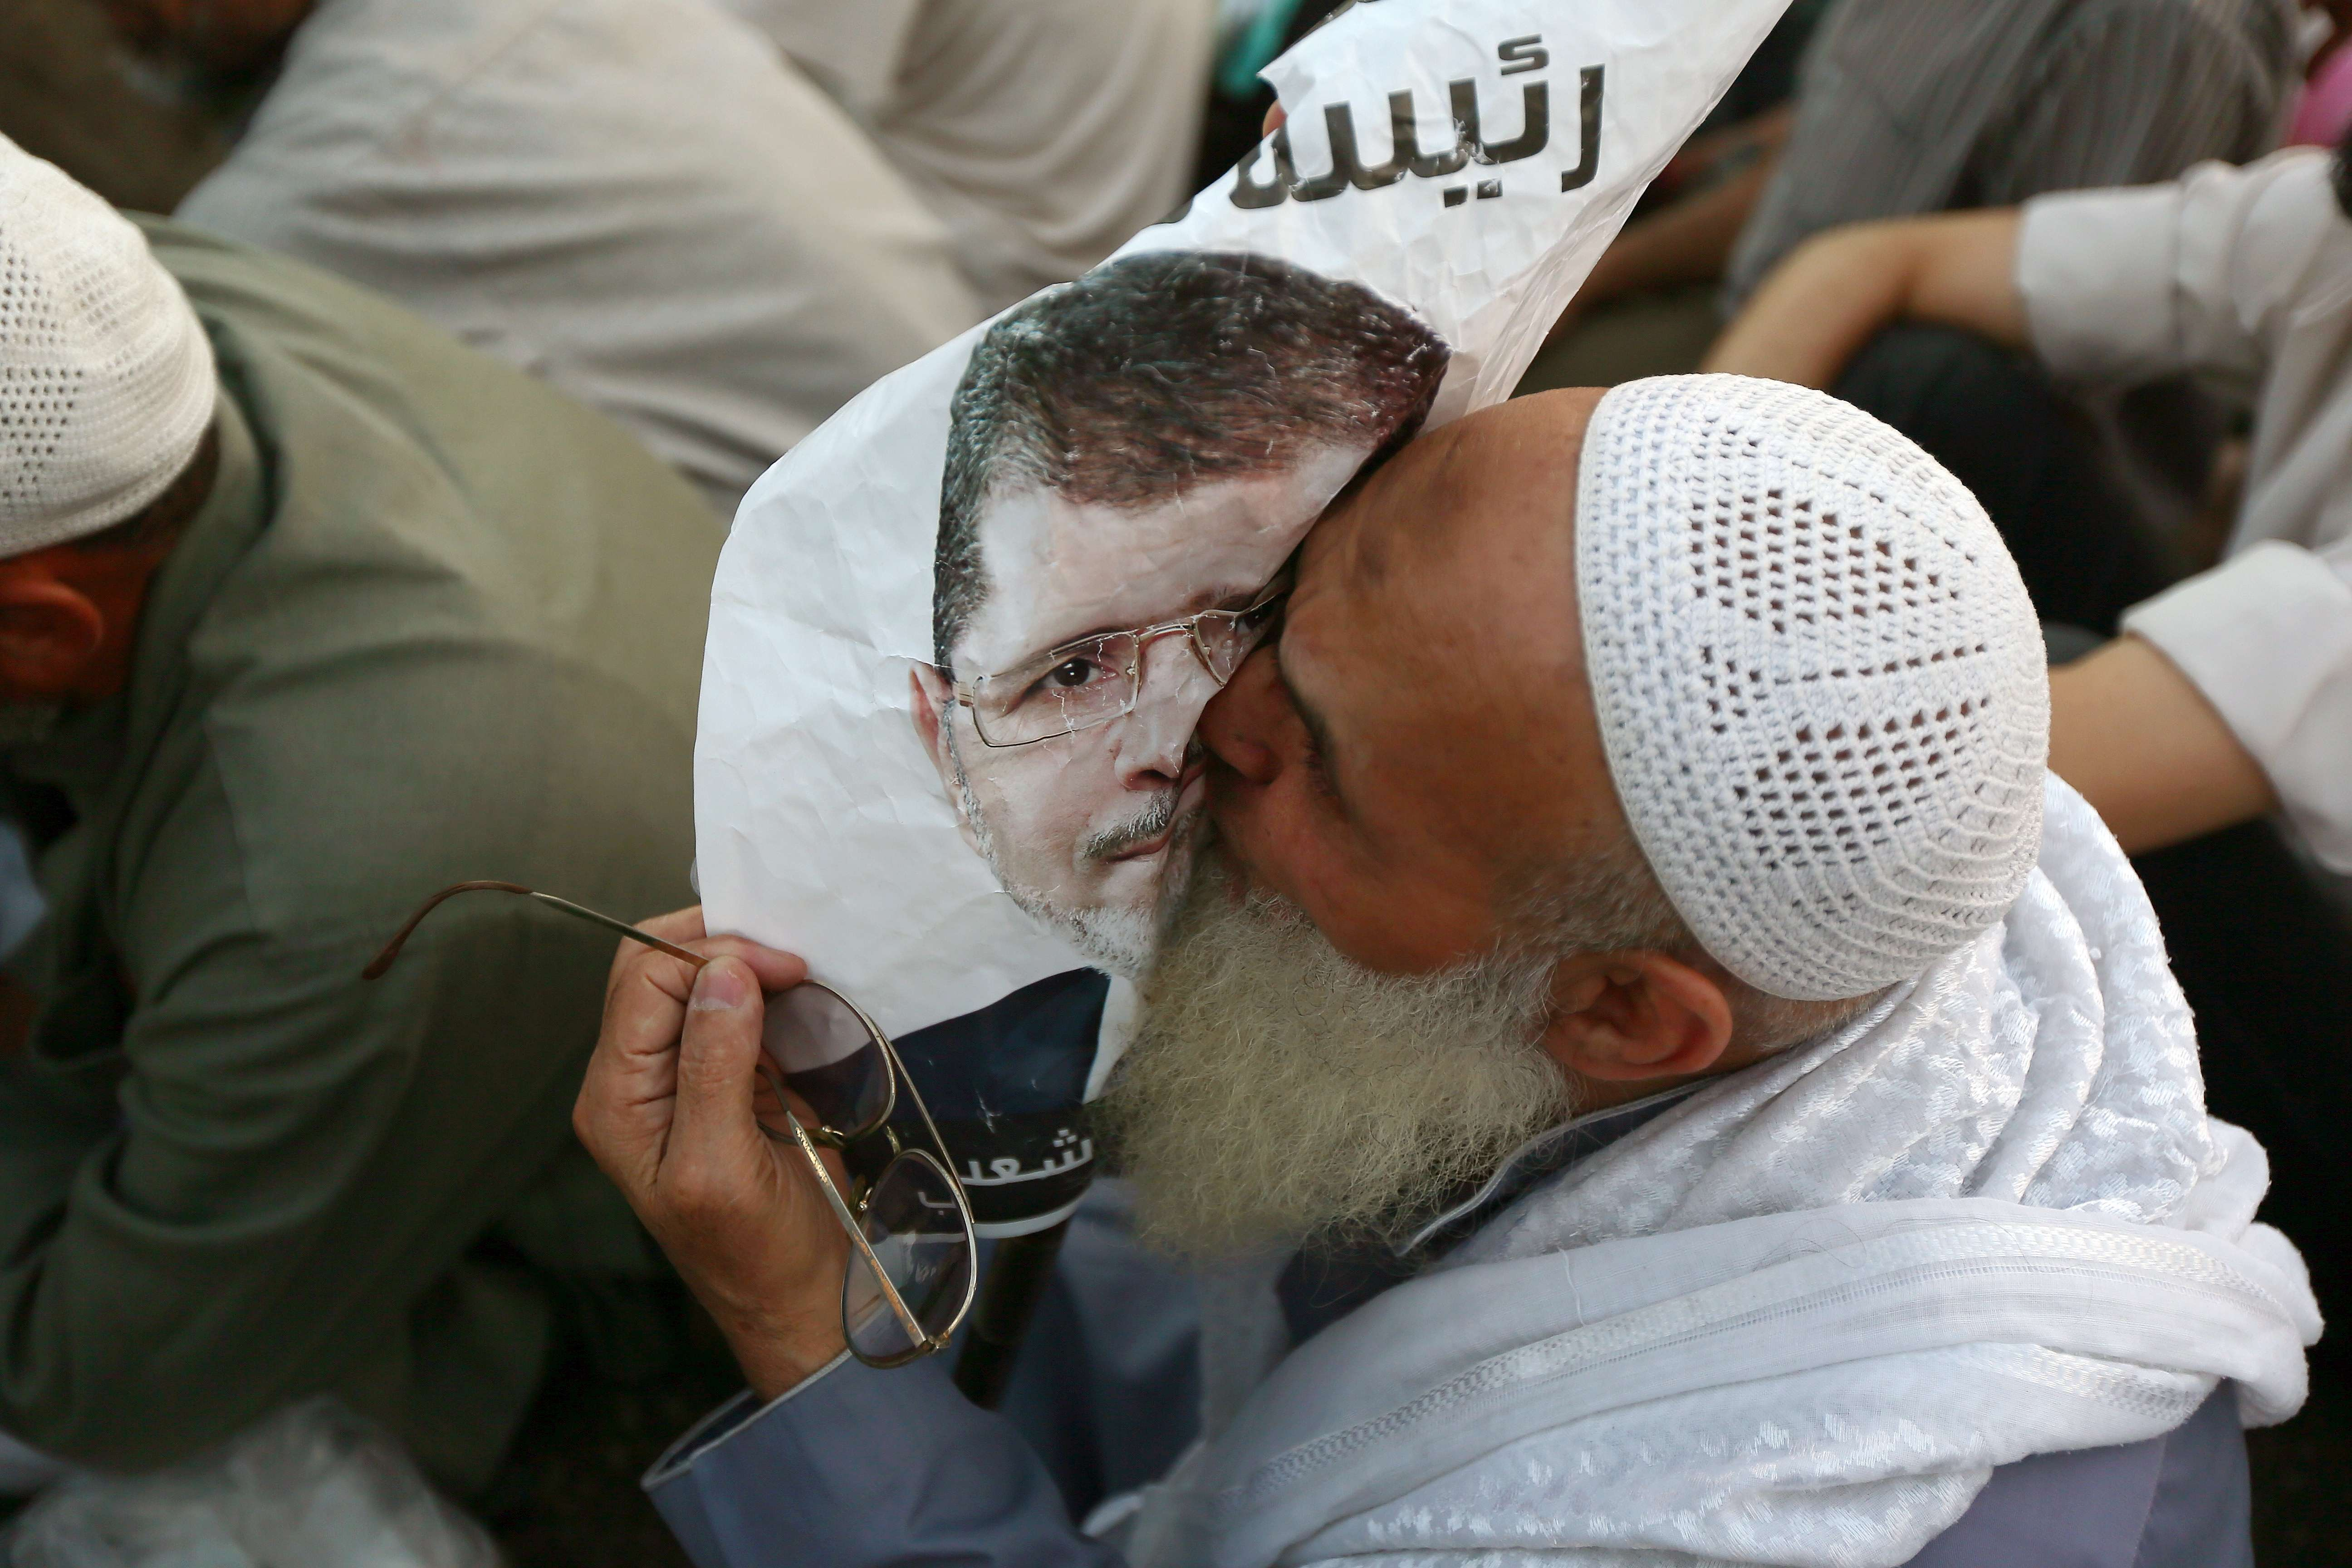 An Egyptian man, supporter of the Muslim Brotherhood and Egypt's ousted president Mohamed Morsi kisses a poster of him as worshipers gather for a dusk payer outside Cairo's Rabaa al-Adawiya mosque on July 11, 2013, during the second day of Islam's holy fasting month of Ramadan. (AFP Photo)